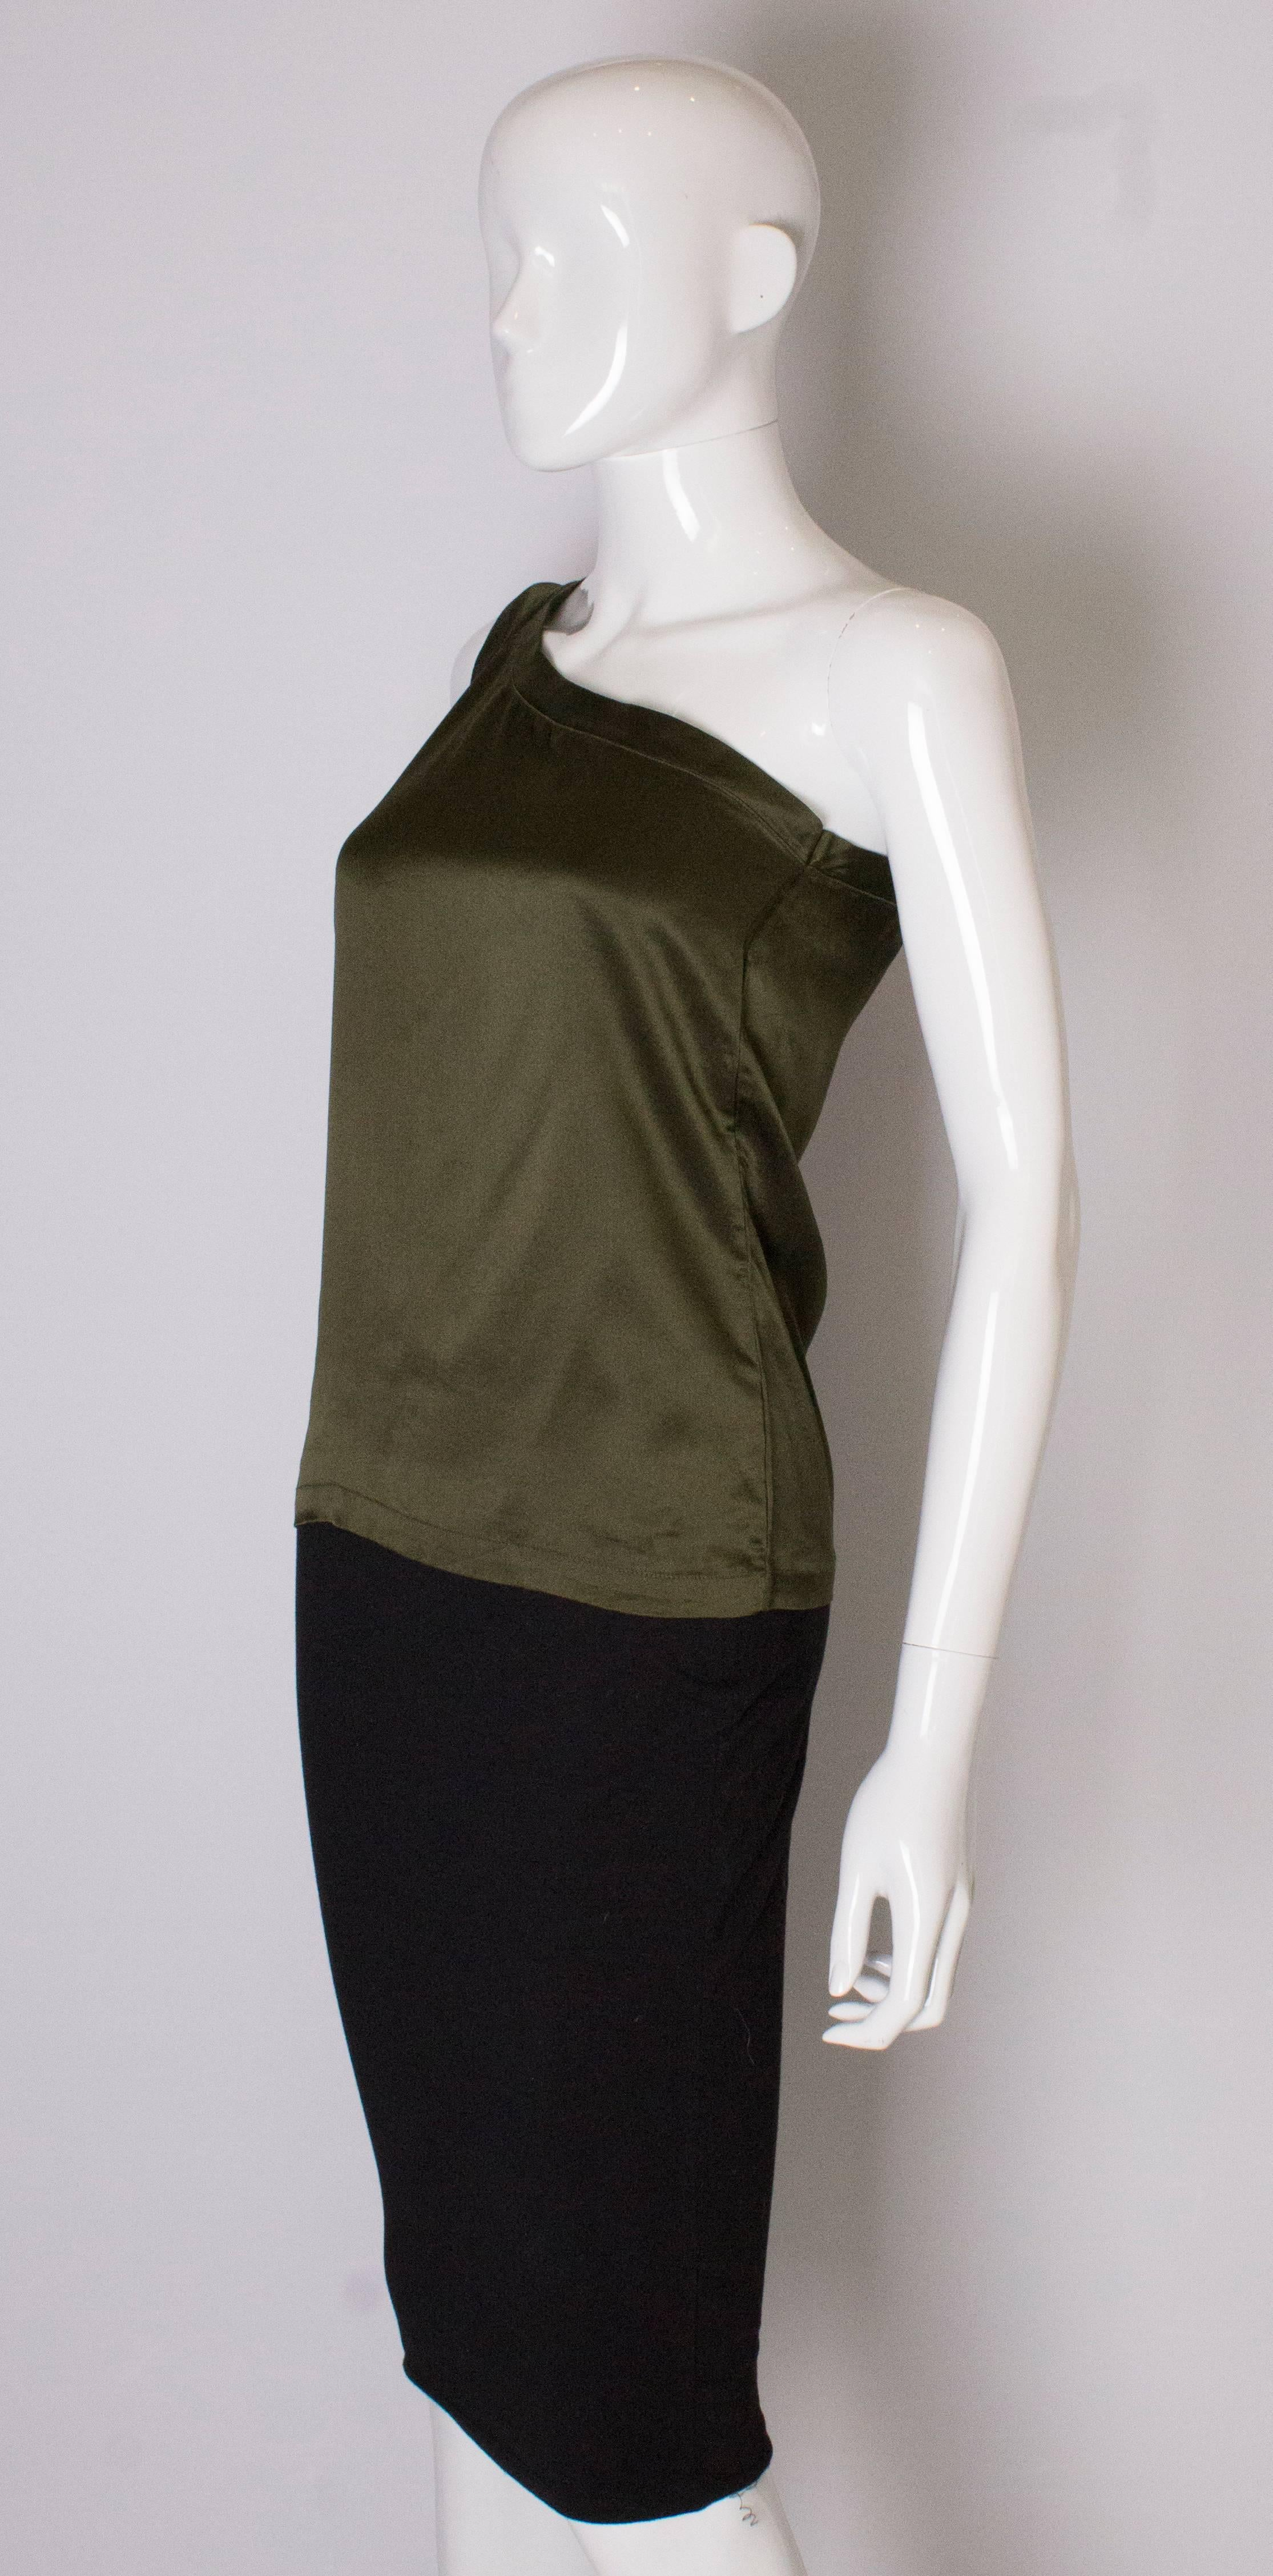 ac61bb36f02d1 A Vintage 1990s olive green one shoulder silk top by Yves Saint Laurent at  1stdibs